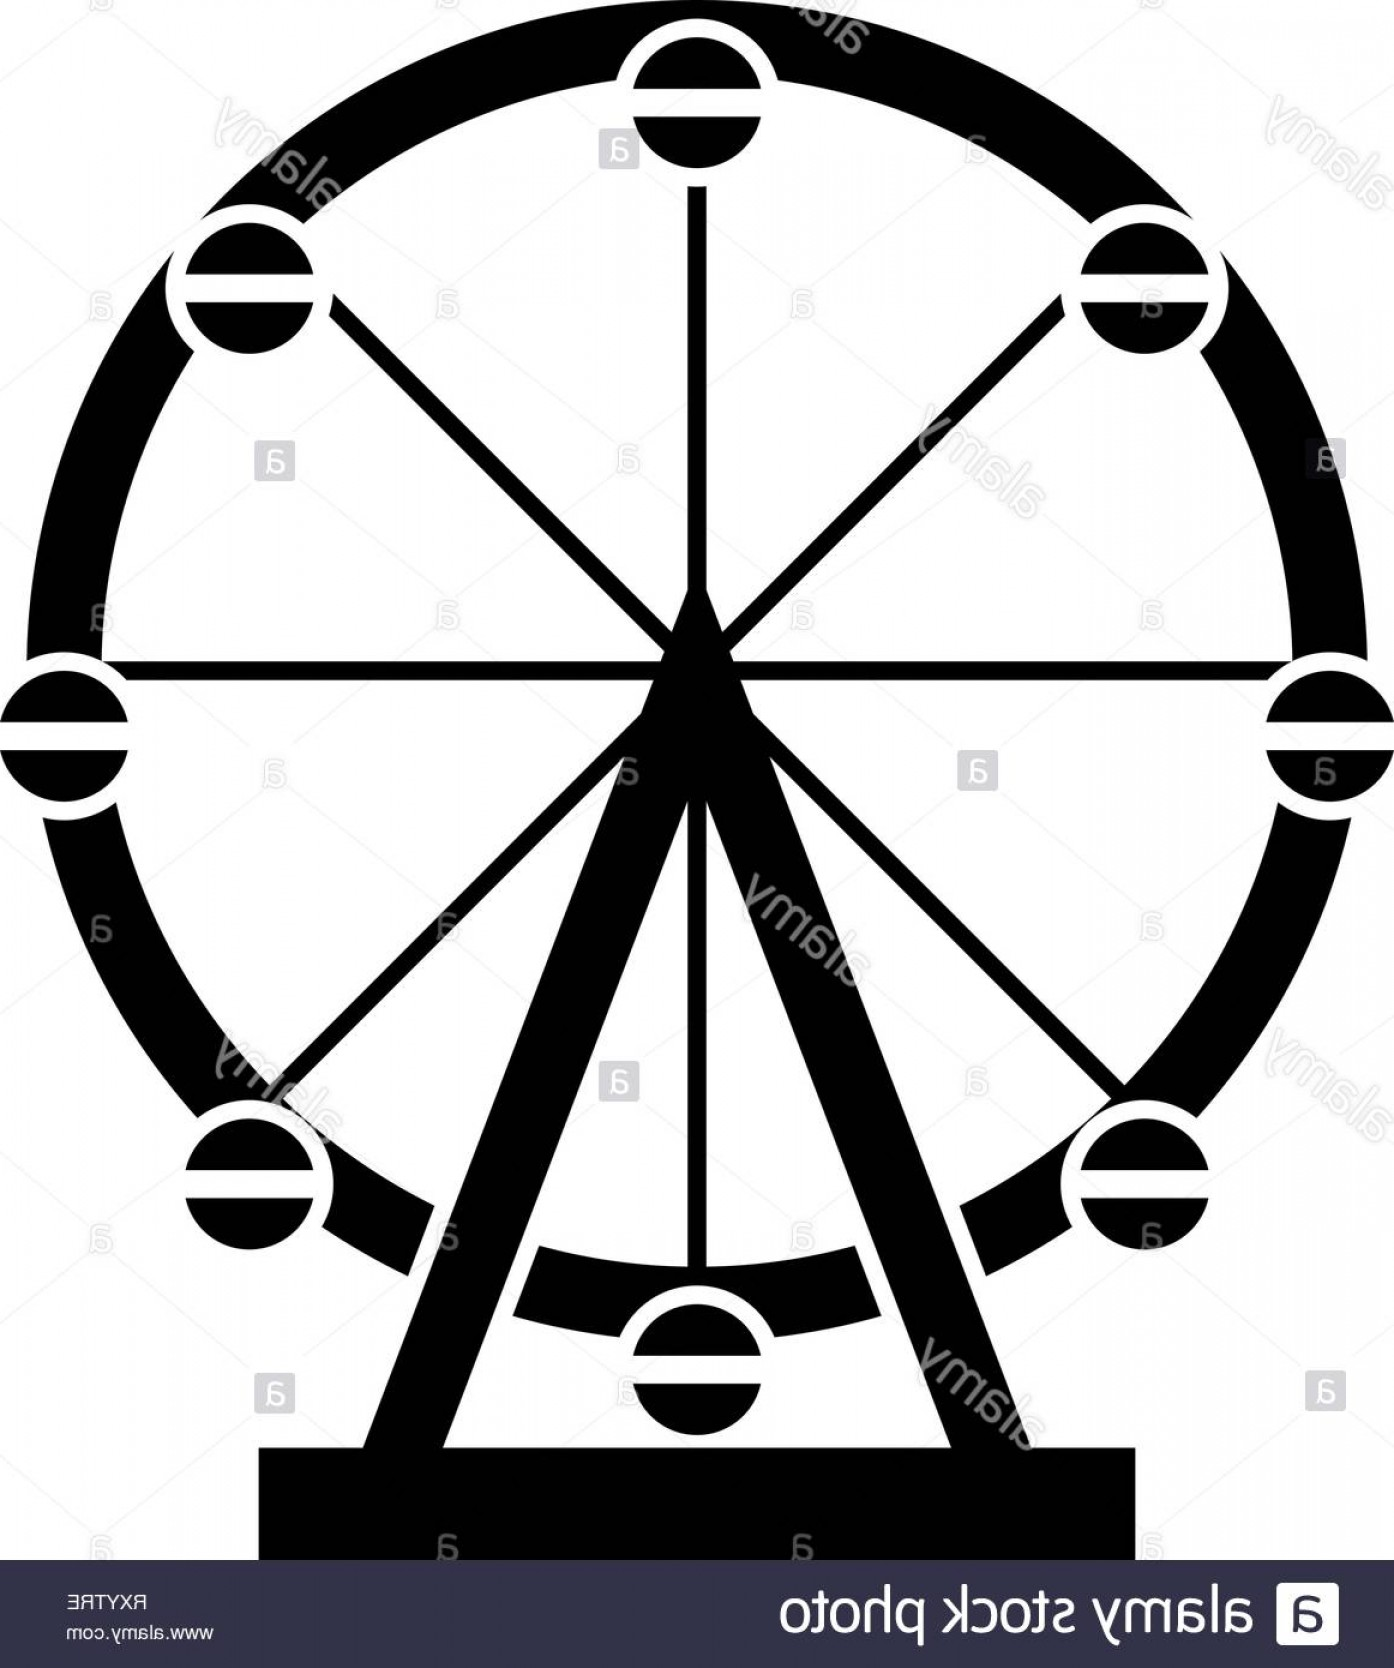 Attraction Icon Vector: Ferris Wheel Amusement In Park On Attraction Icon Black Color Vector Illustration Flat Style Simple Image Image